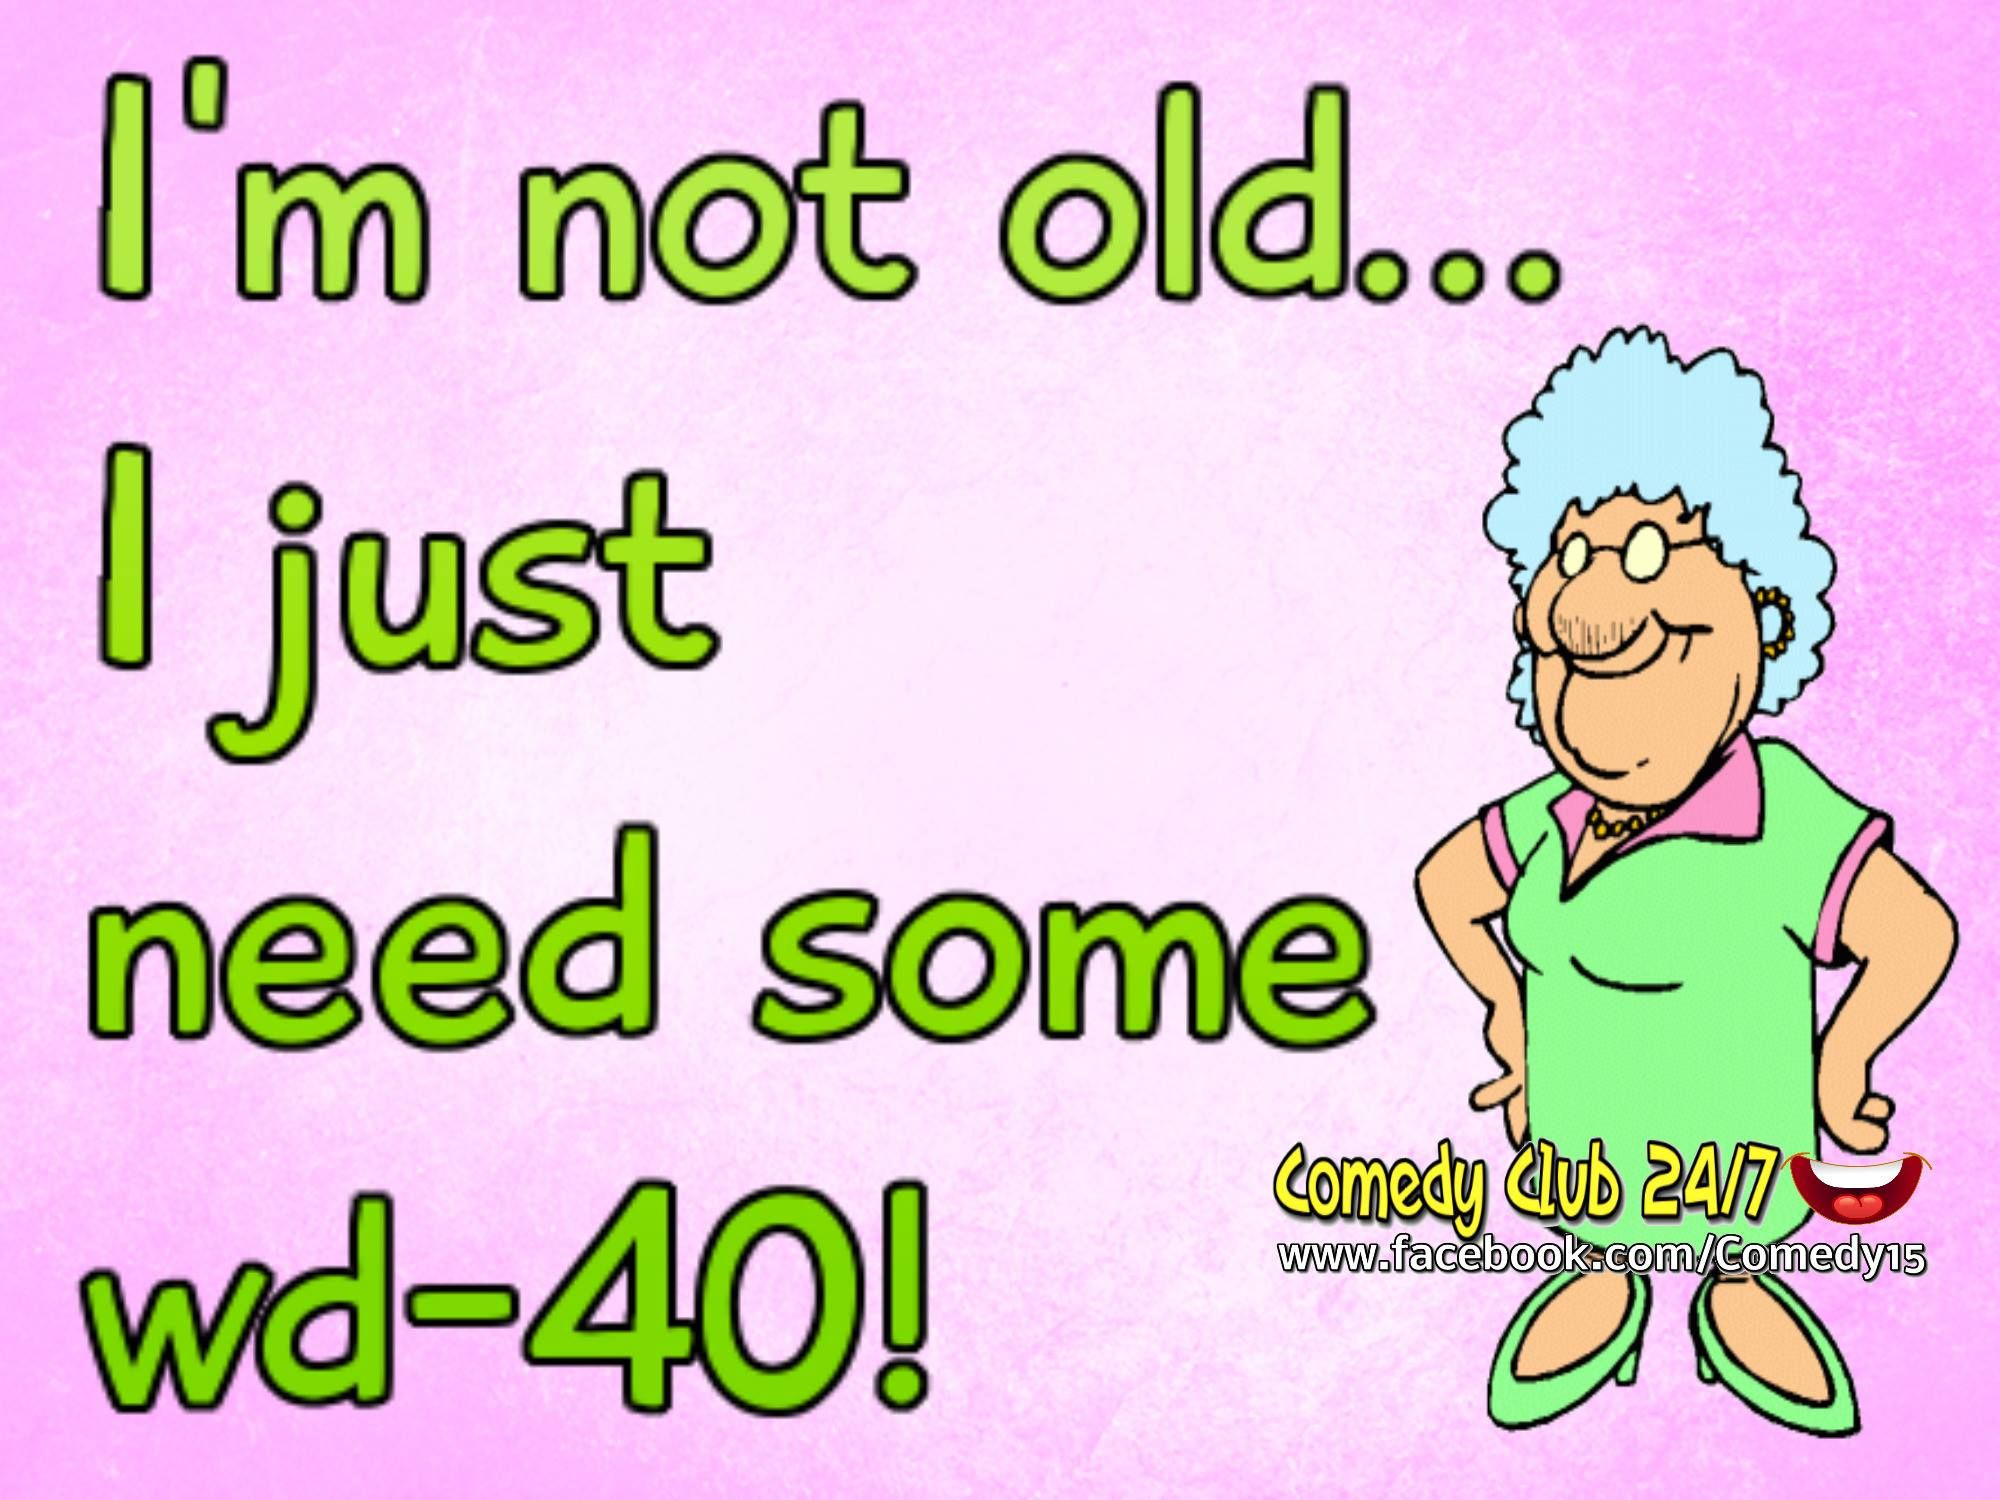 Humor Quotes And Sayings: I Am Not Old... I Just Need Some WD-40 Pictures, Photos